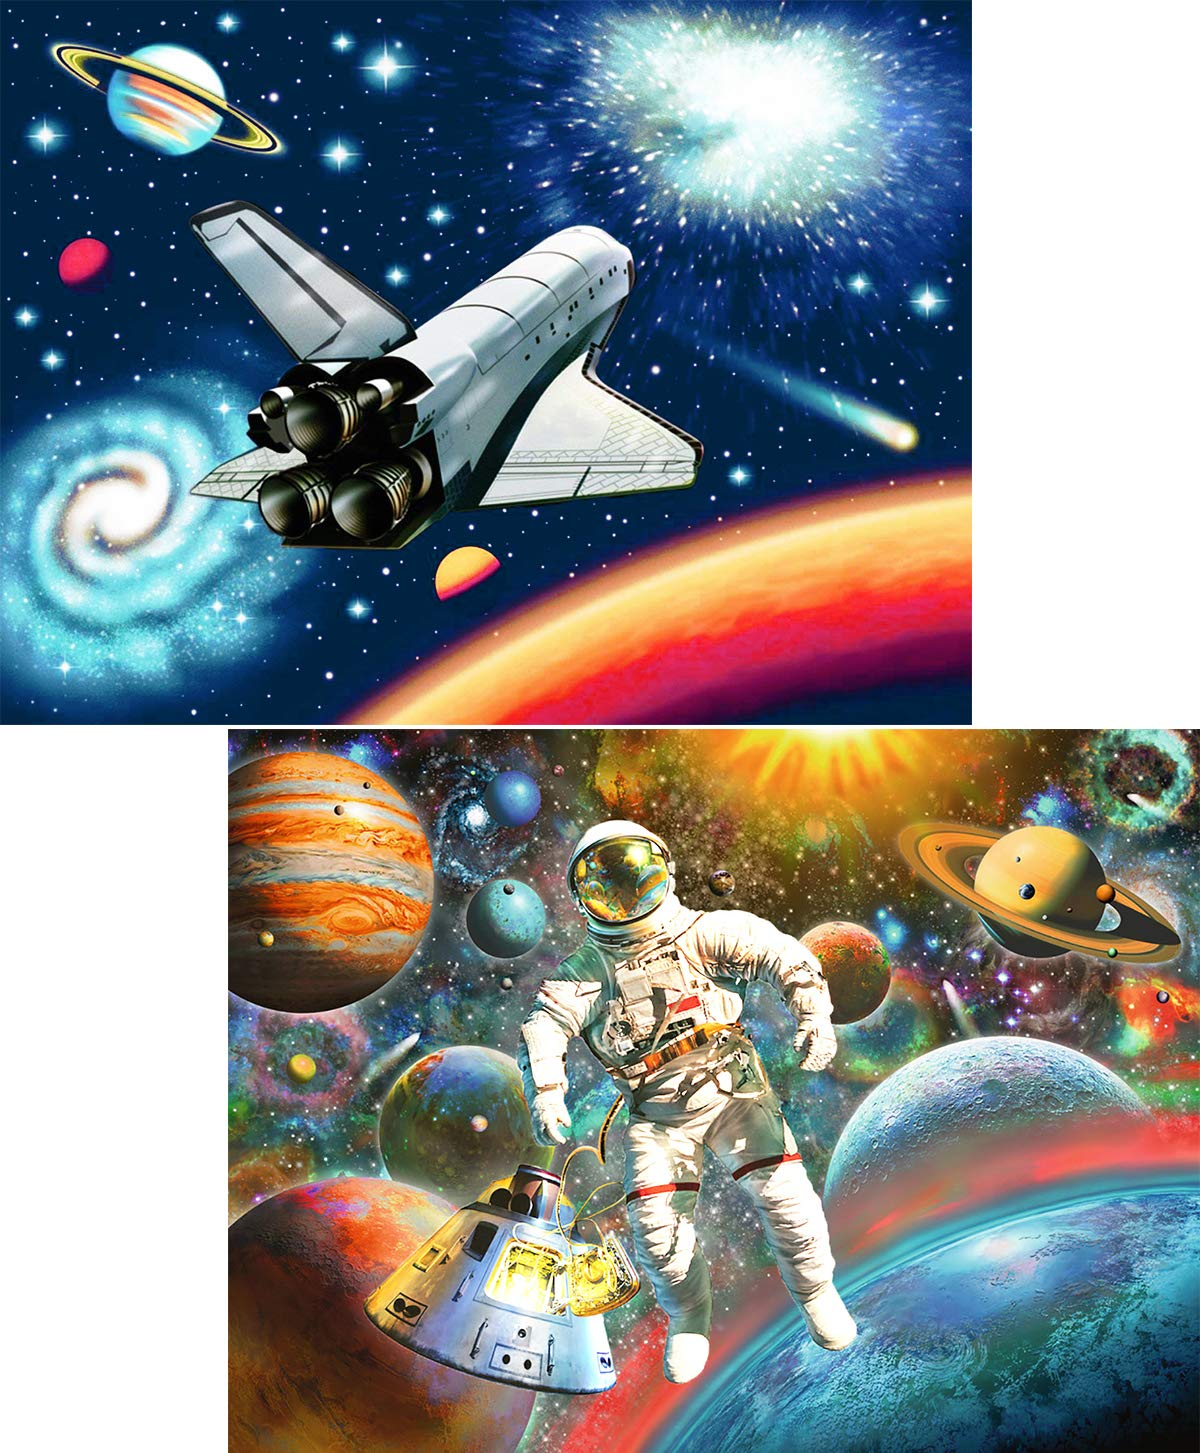 5D Diamond Painting by Number Kits Spaceships & Astronauts Full Drill for Adults Kids, Ginfonr Craft Rhinestone Paint with Diamonds Set Space Arts Decorations (12x16inch, 2 Pack)